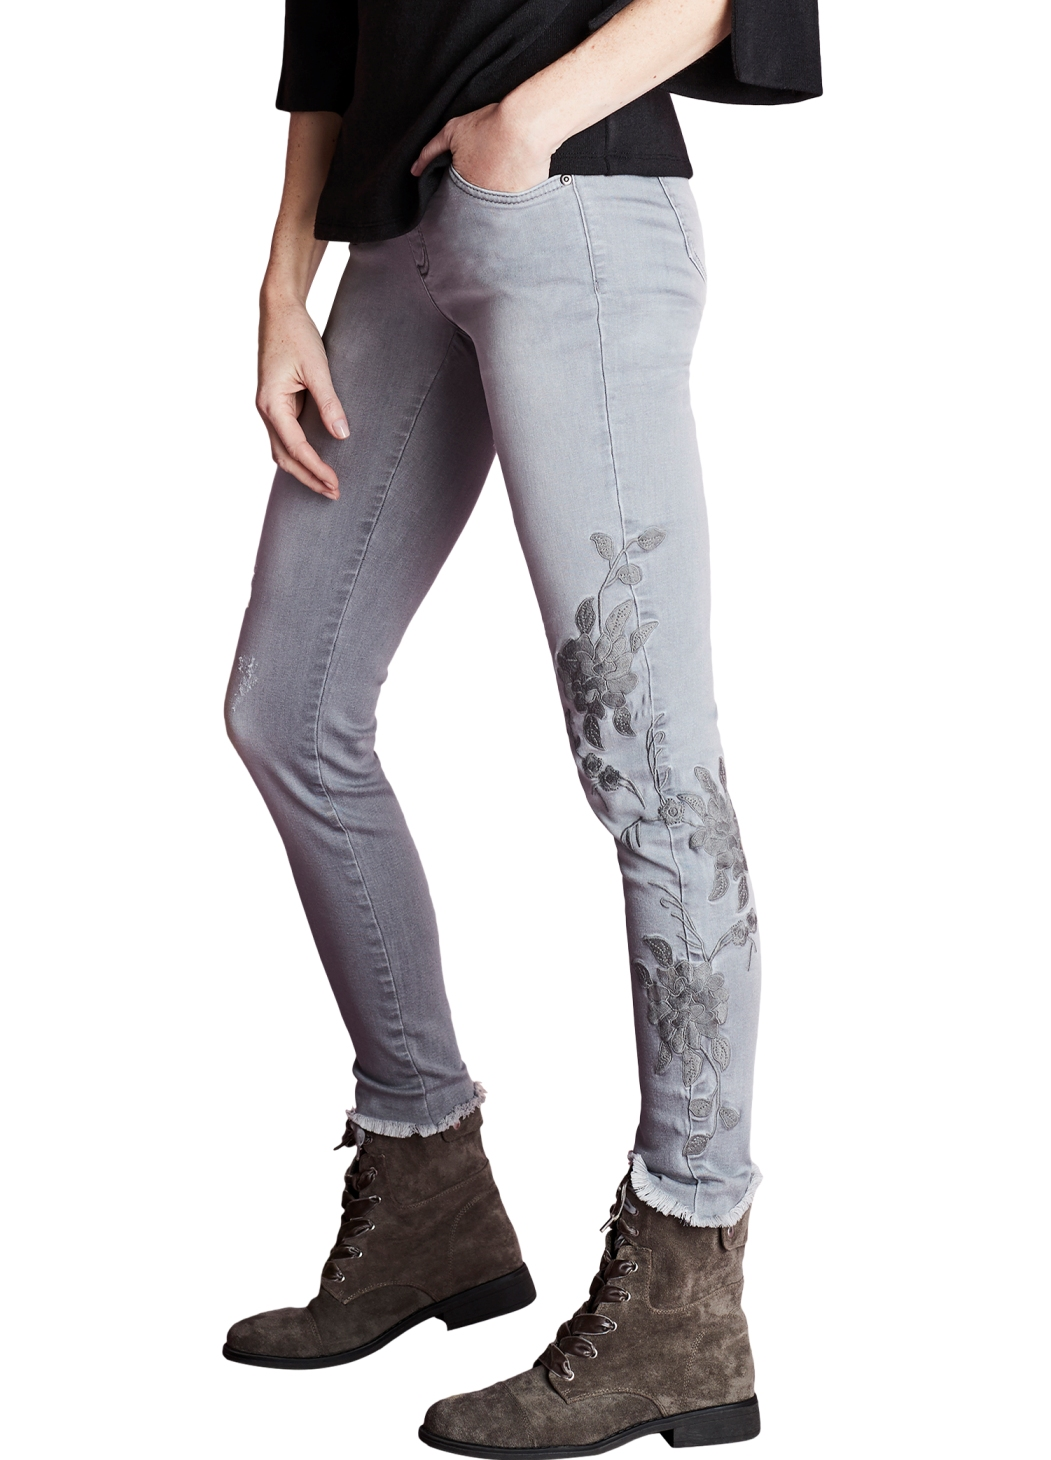 Remarkable Lisette L Slim Jeans Style 456788 Clara Denim With Flower Embroidery Color Grey Download Free Architecture Designs Rallybritishbridgeorg